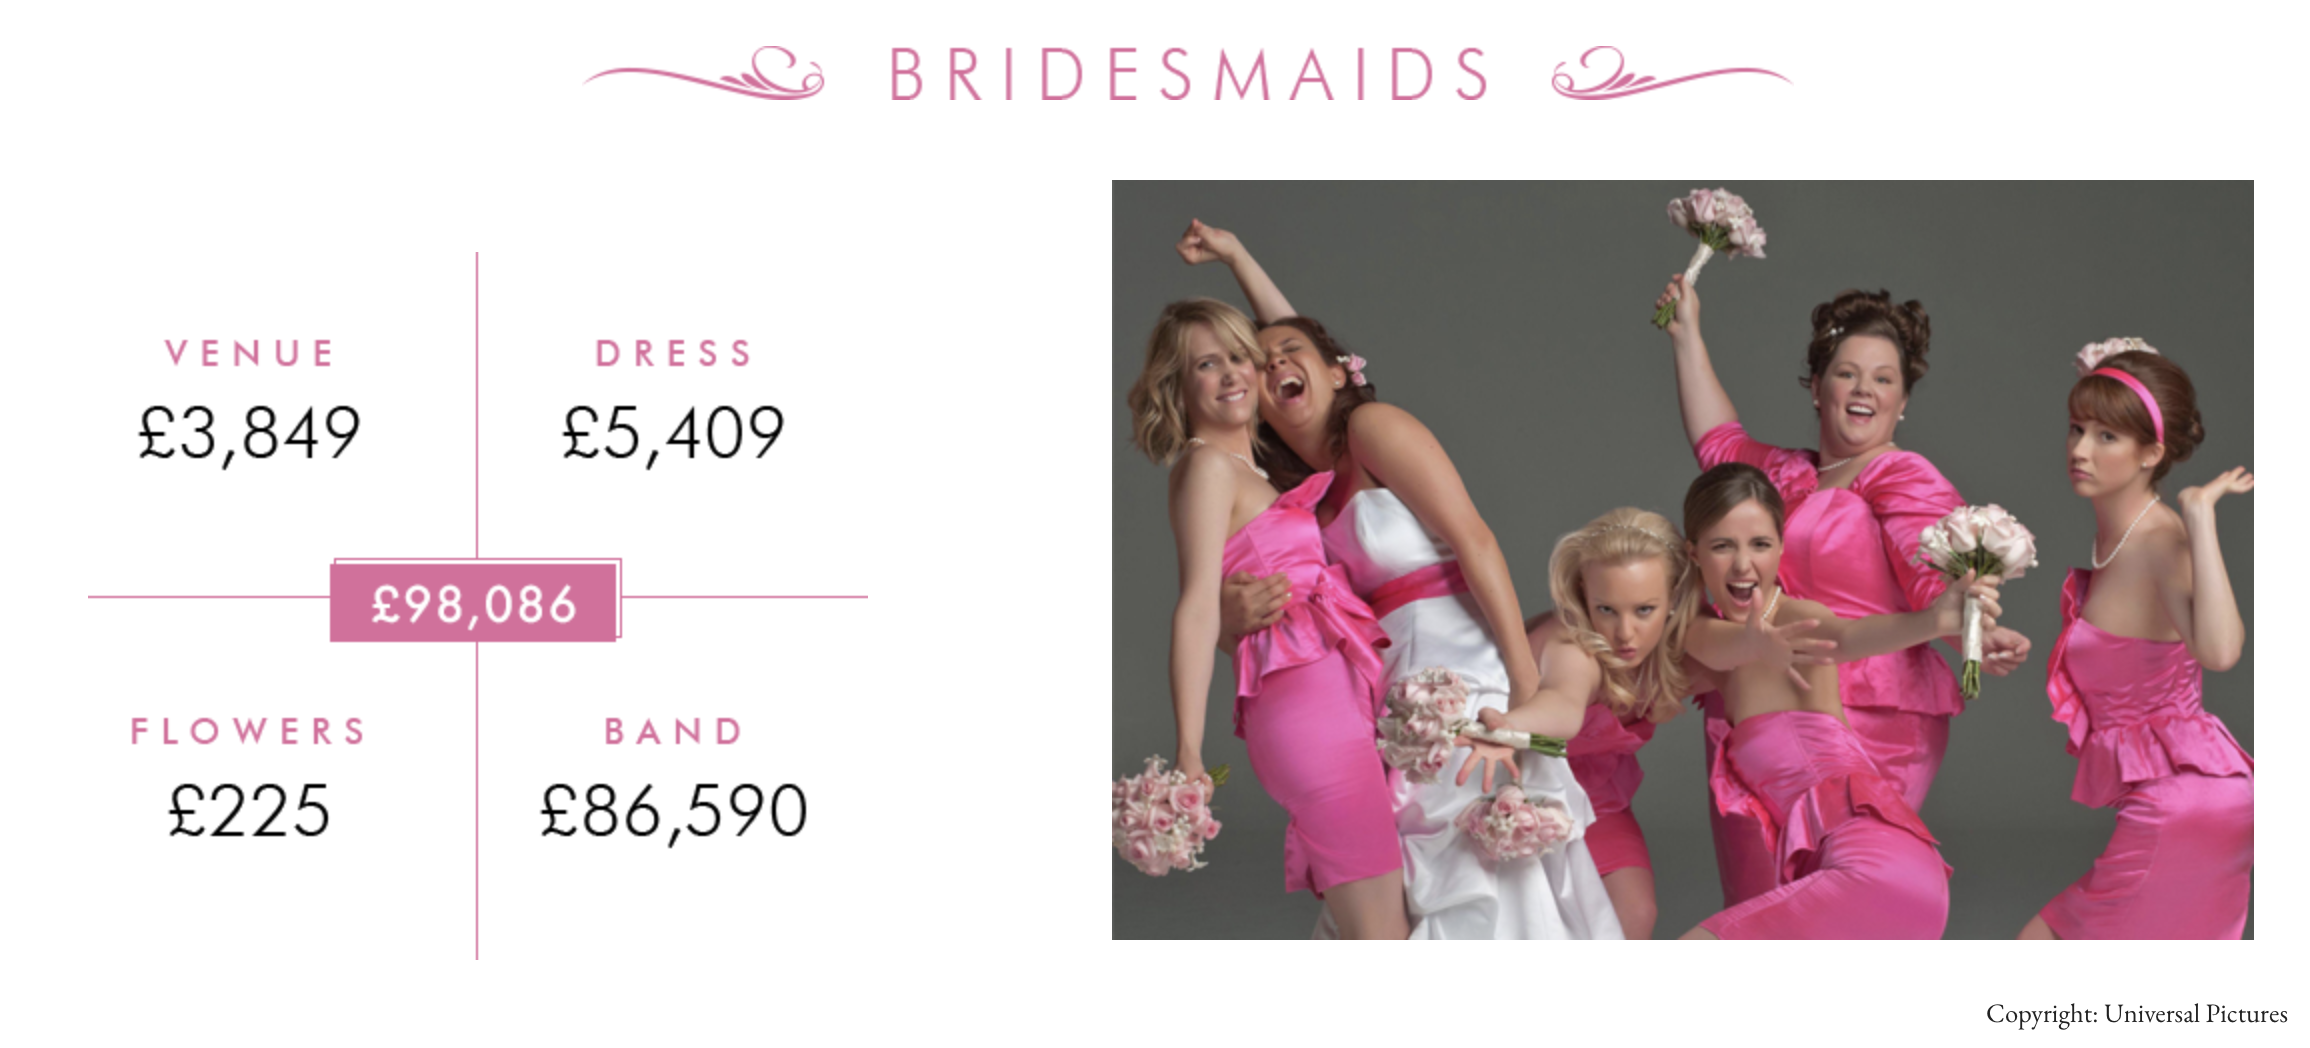 bridesmaids movie wedding